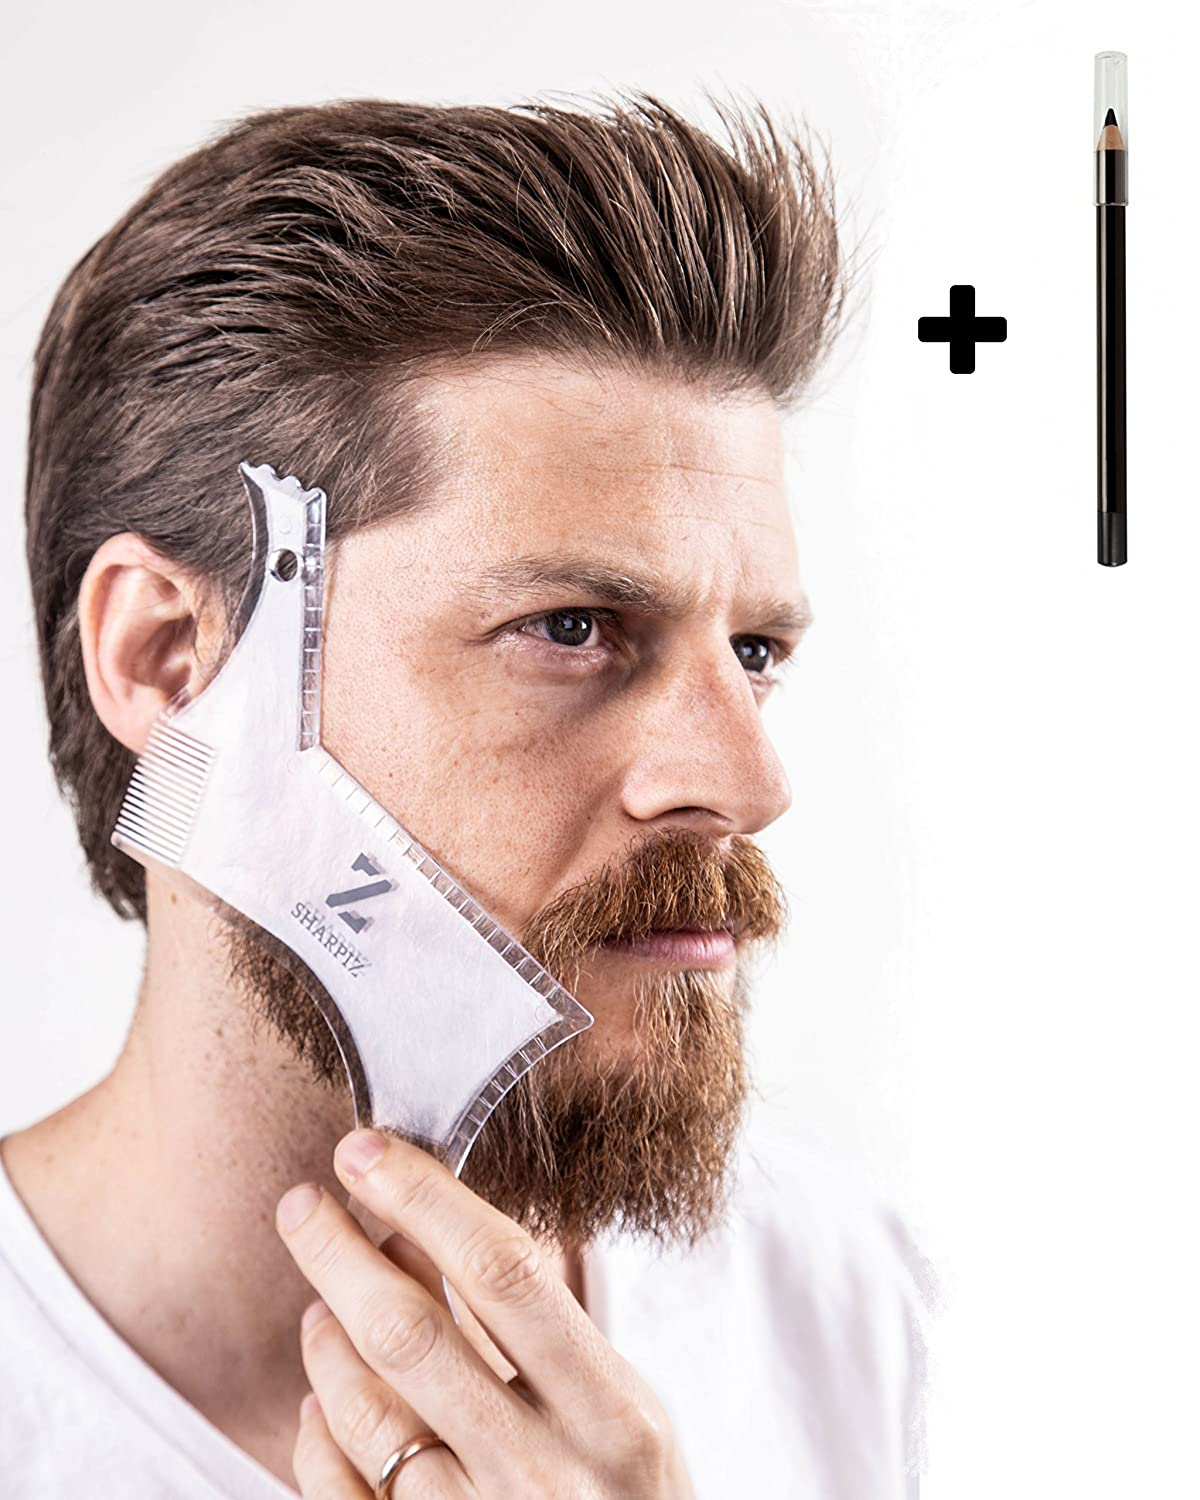 Beard Shaping Tool Liner Template by Sharpiz | Transparent Stencil Comb Shaper for Styling with Trimmer, Razor or Clippers | The Perfect Gift Including a Lineup Pencil & Grooming Guide